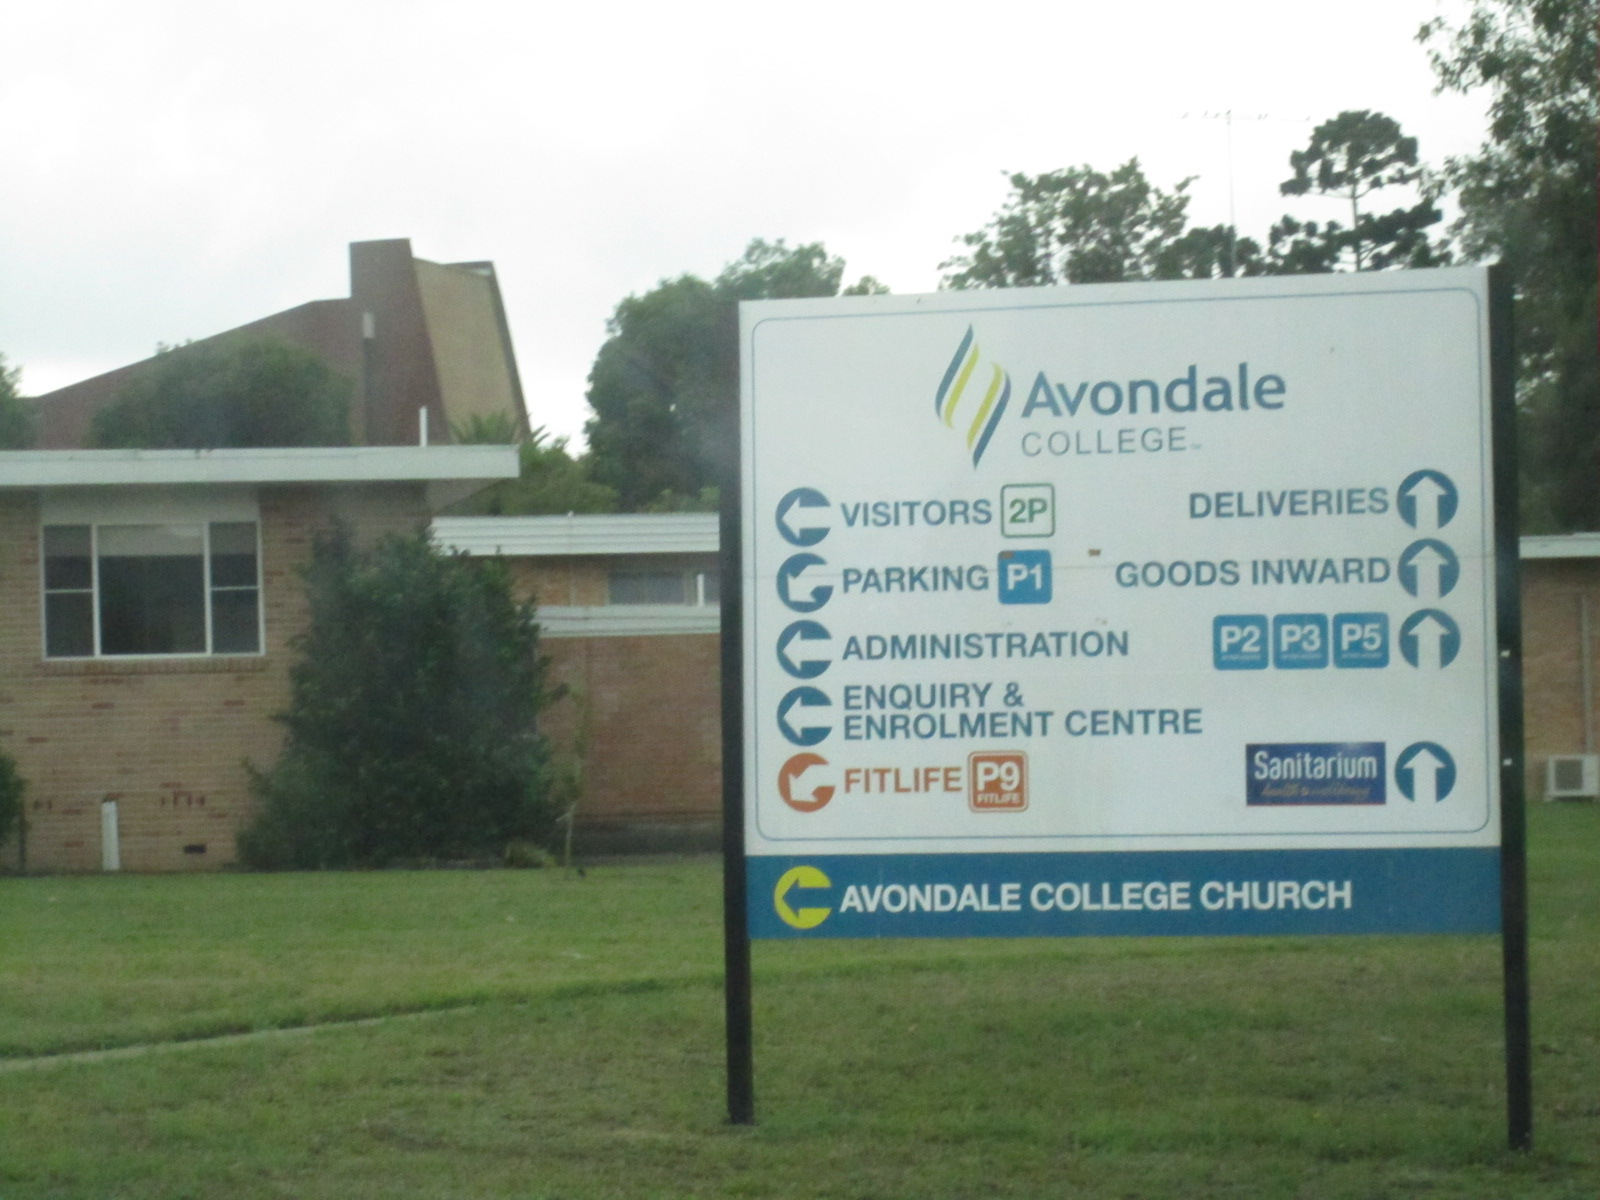 Avondale College - Wikipedia